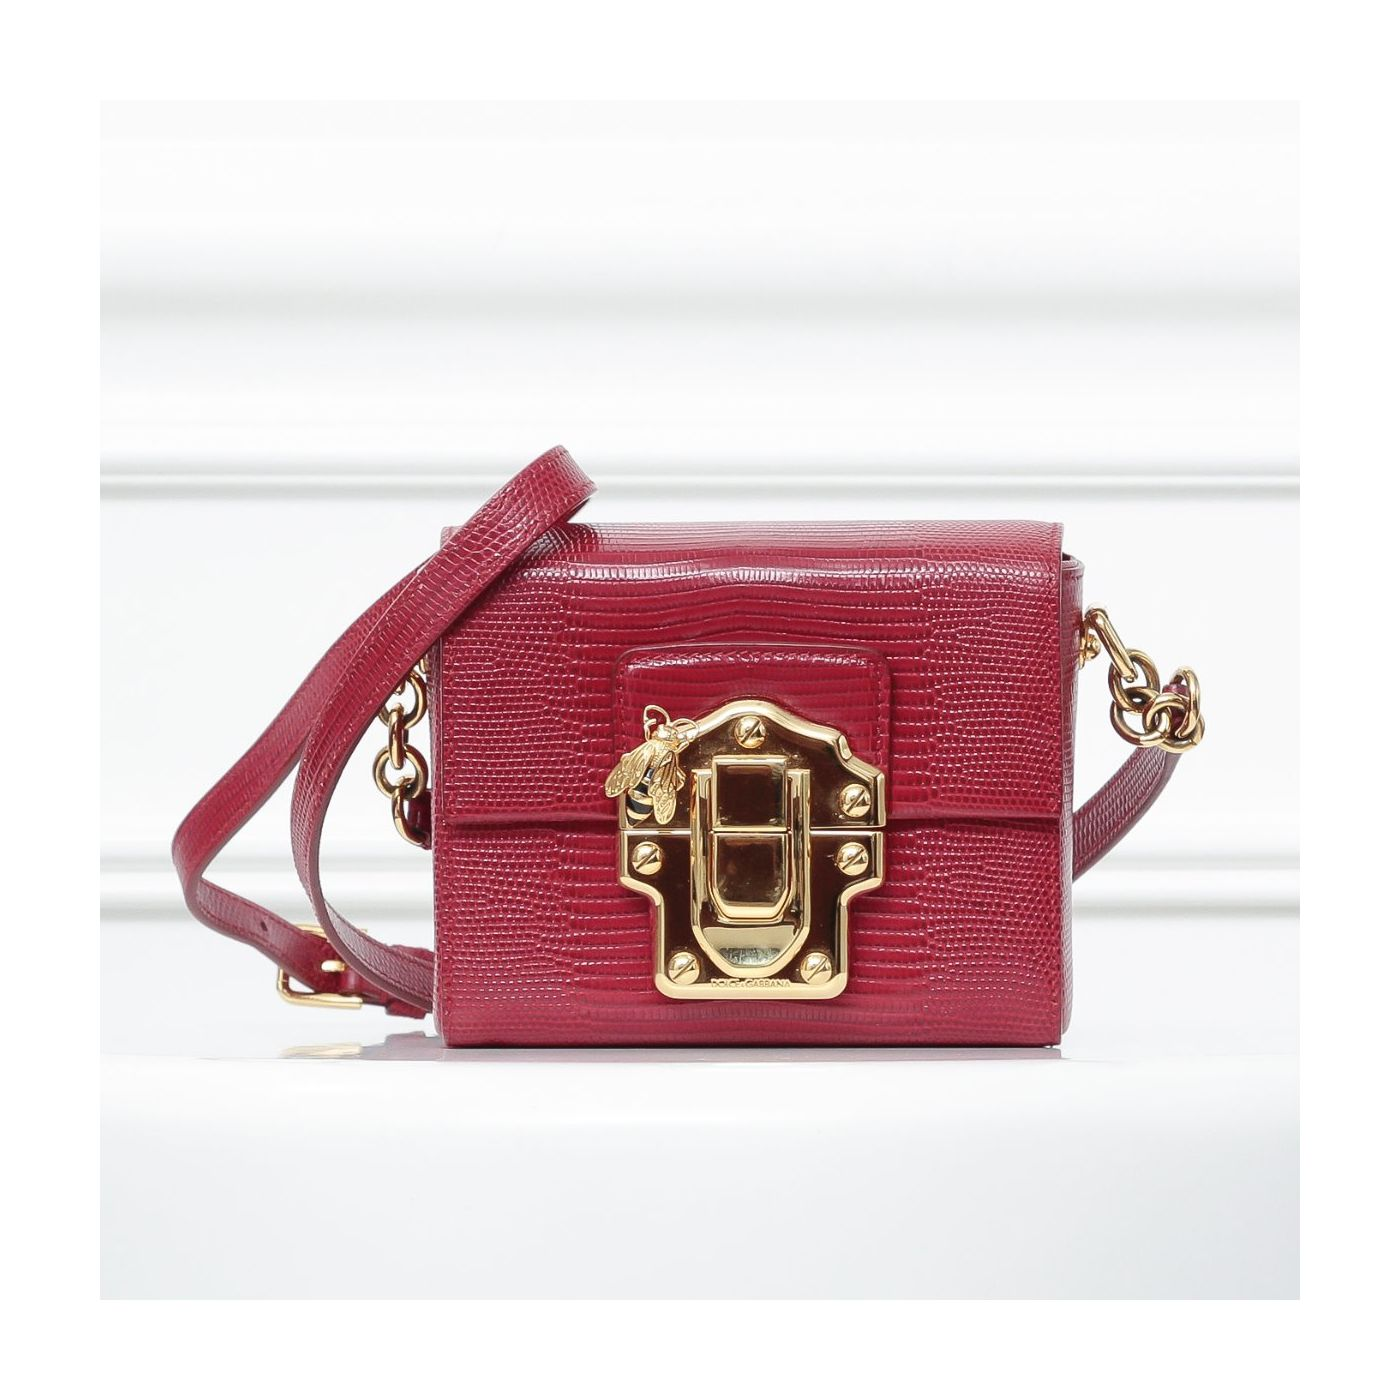 Dolce & Gabbana Red Lucia Bee Lizard Embossed Shoulder Bag